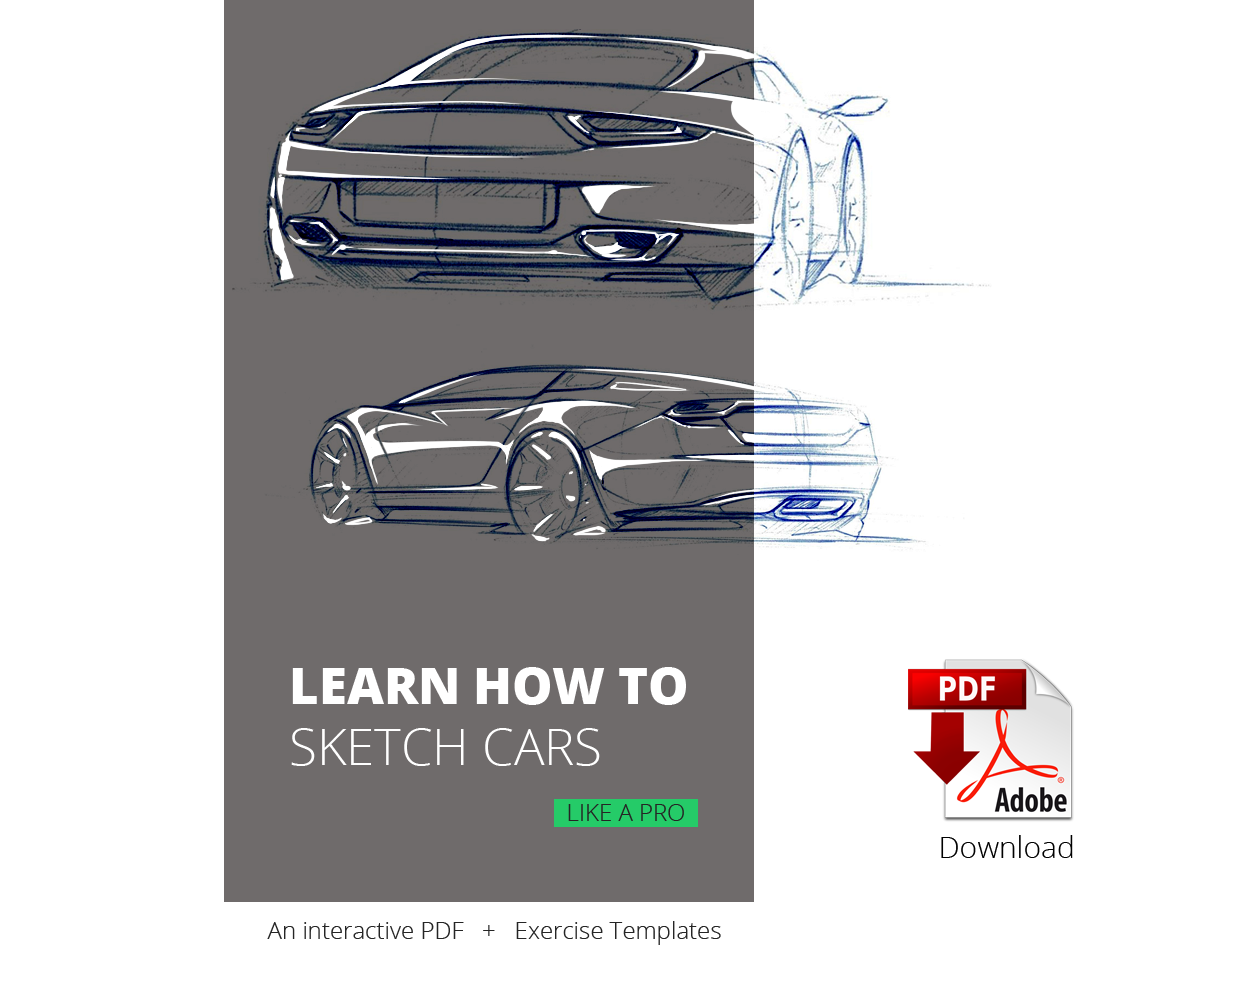 https://www.kickstarter.com/projects/bucarsadesign/learn-how-to-sketch-cars-like-a-pro